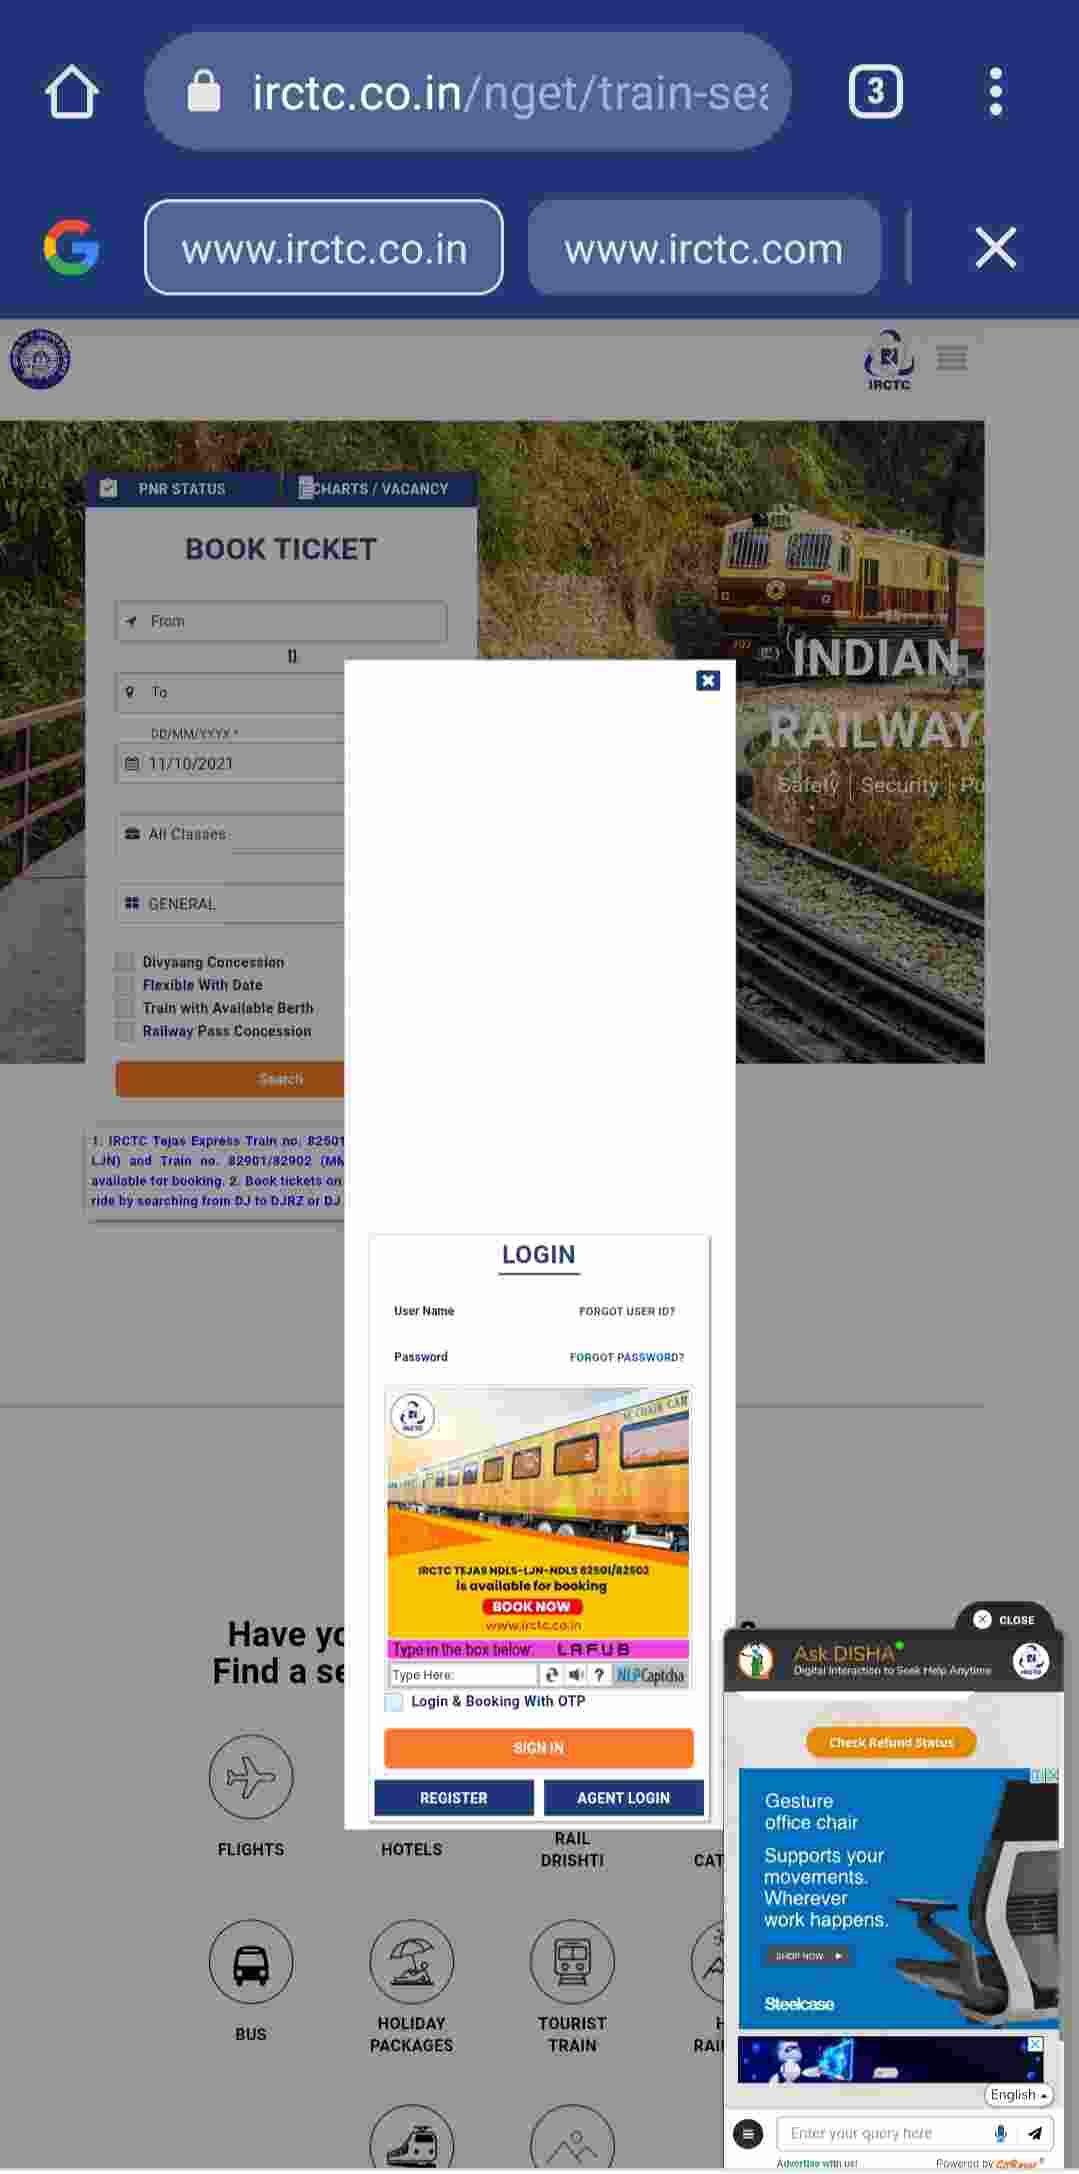 Visit IRCTC Official Website and Login